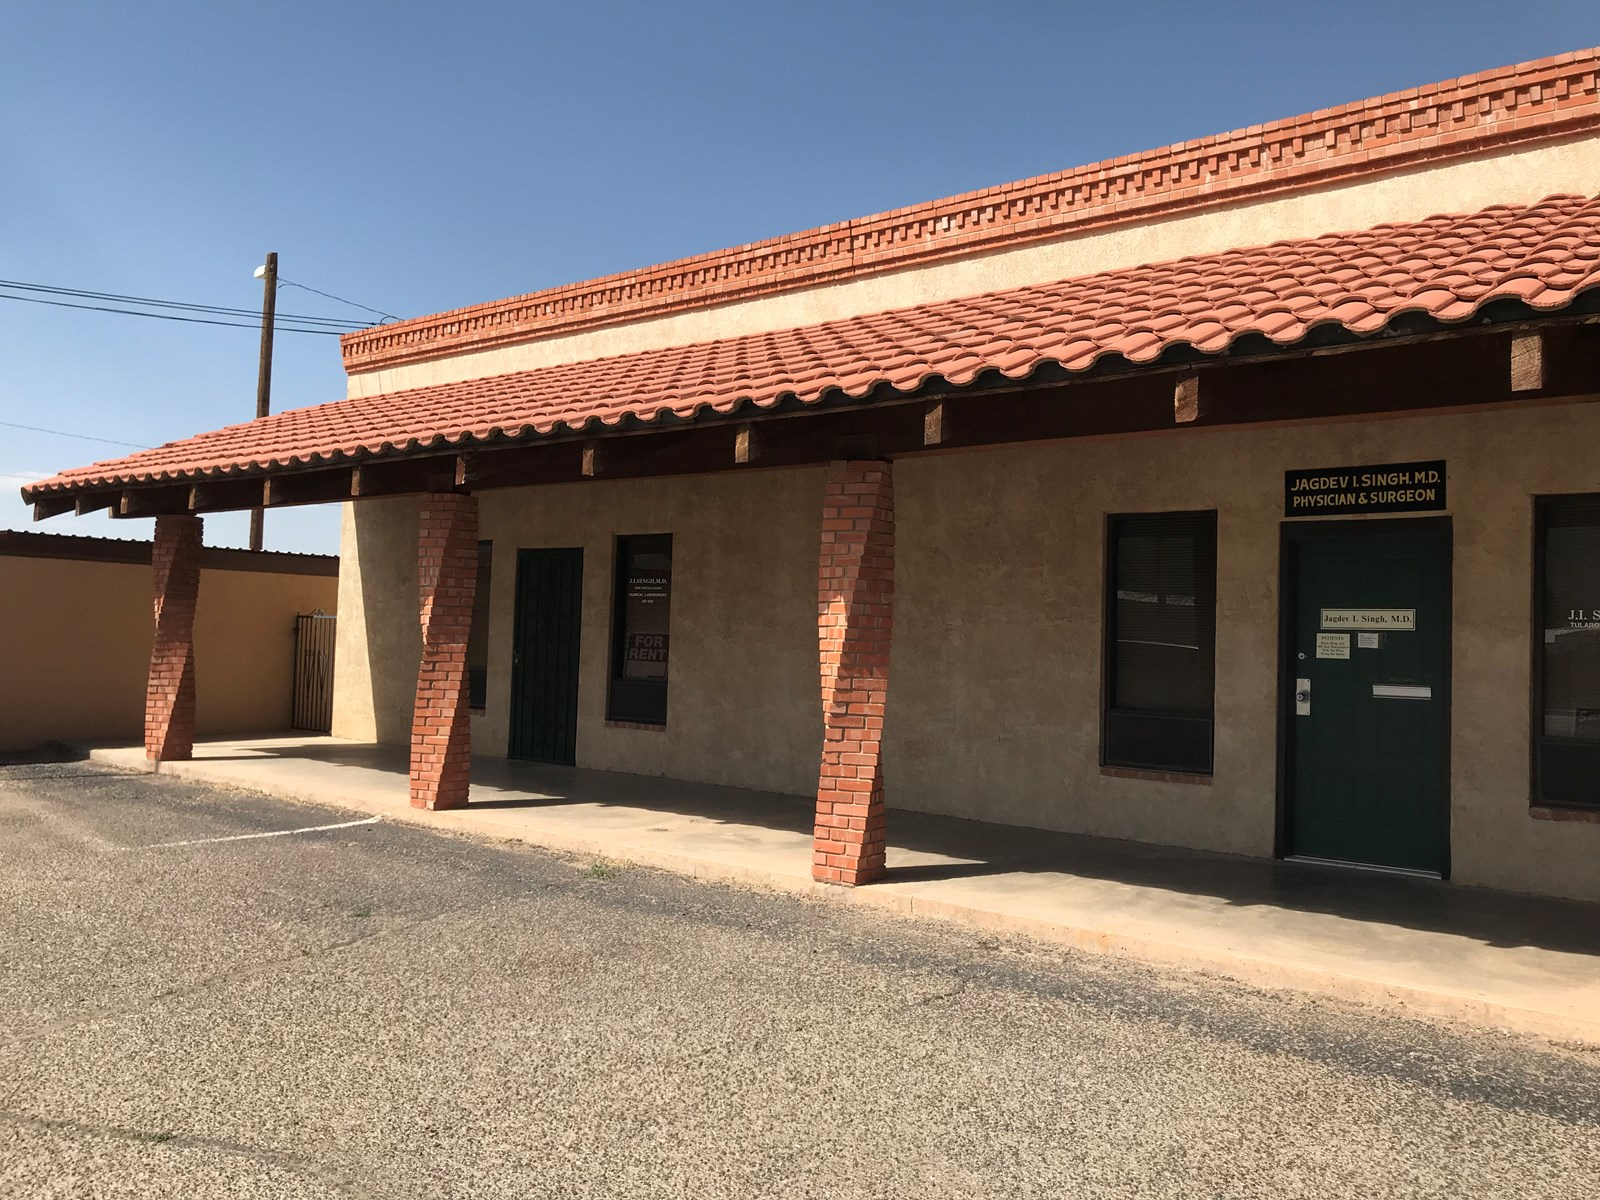 Commercial Property in the Heart of Alamogordo